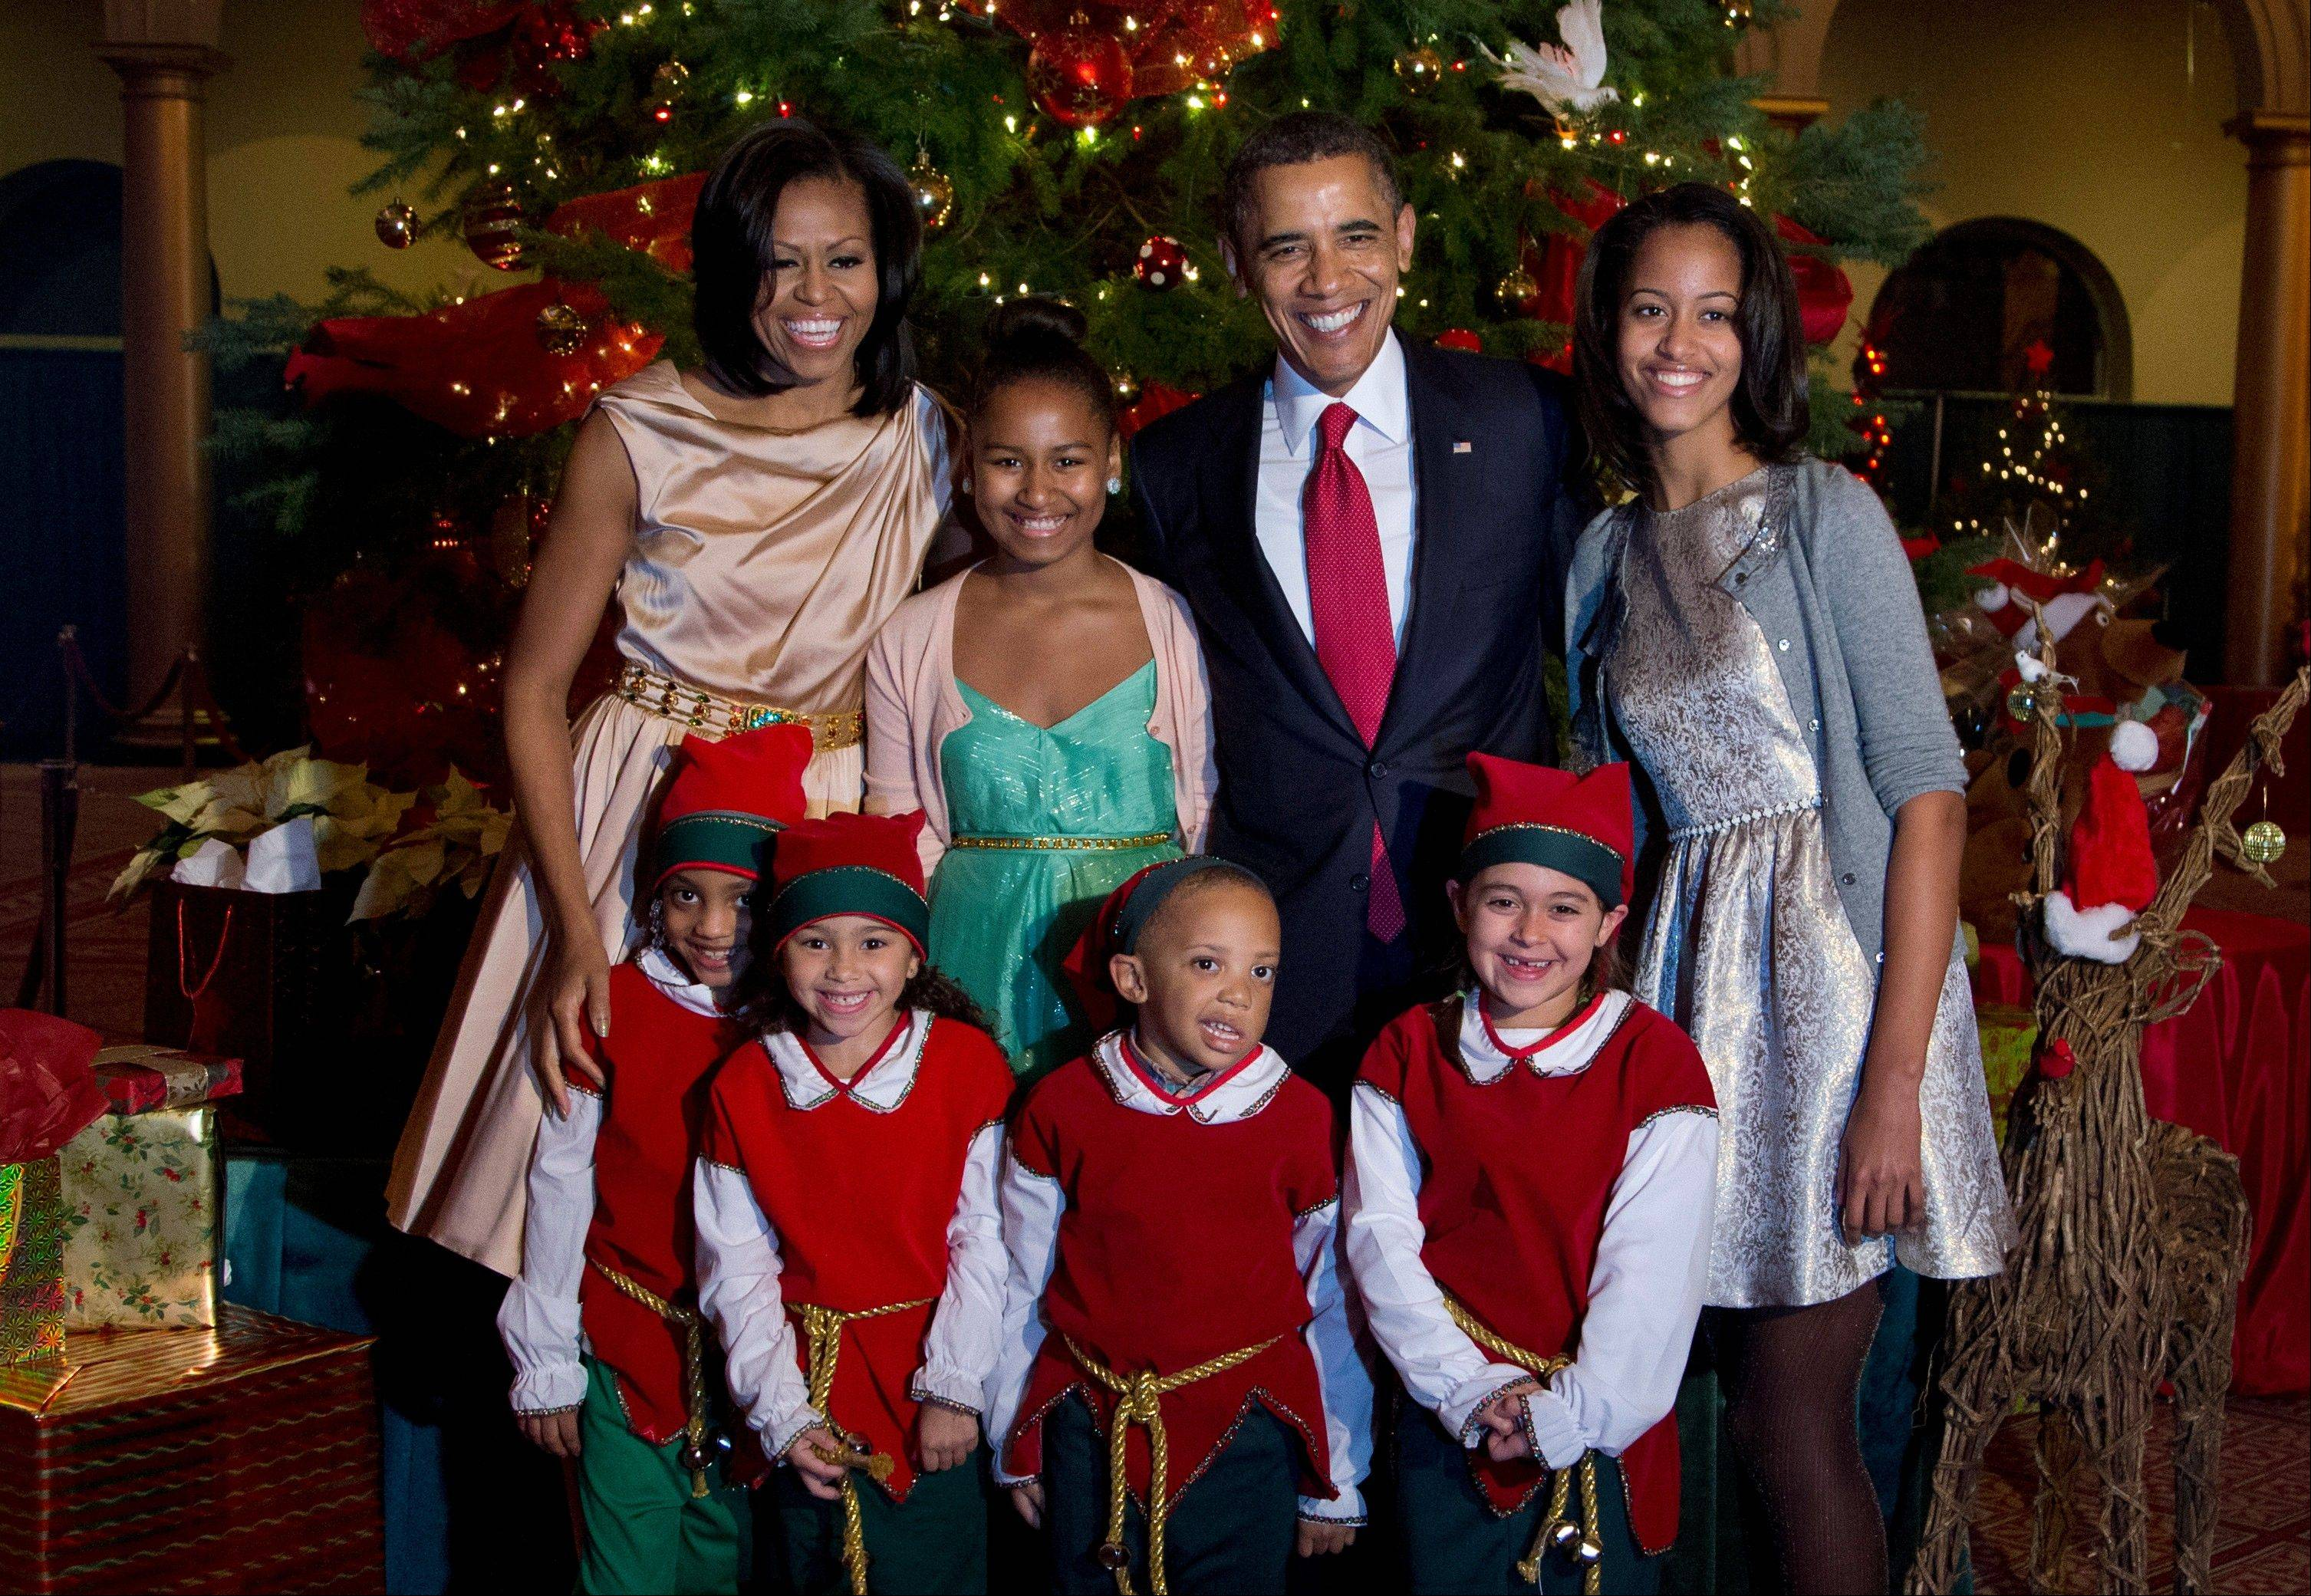 The first family, from left, first lady Michelle Obama, Sasha Obama, President Barack Obama and Malia Obama, pose with children dressed like elves at the National Building Museum in Washington, Sunday.